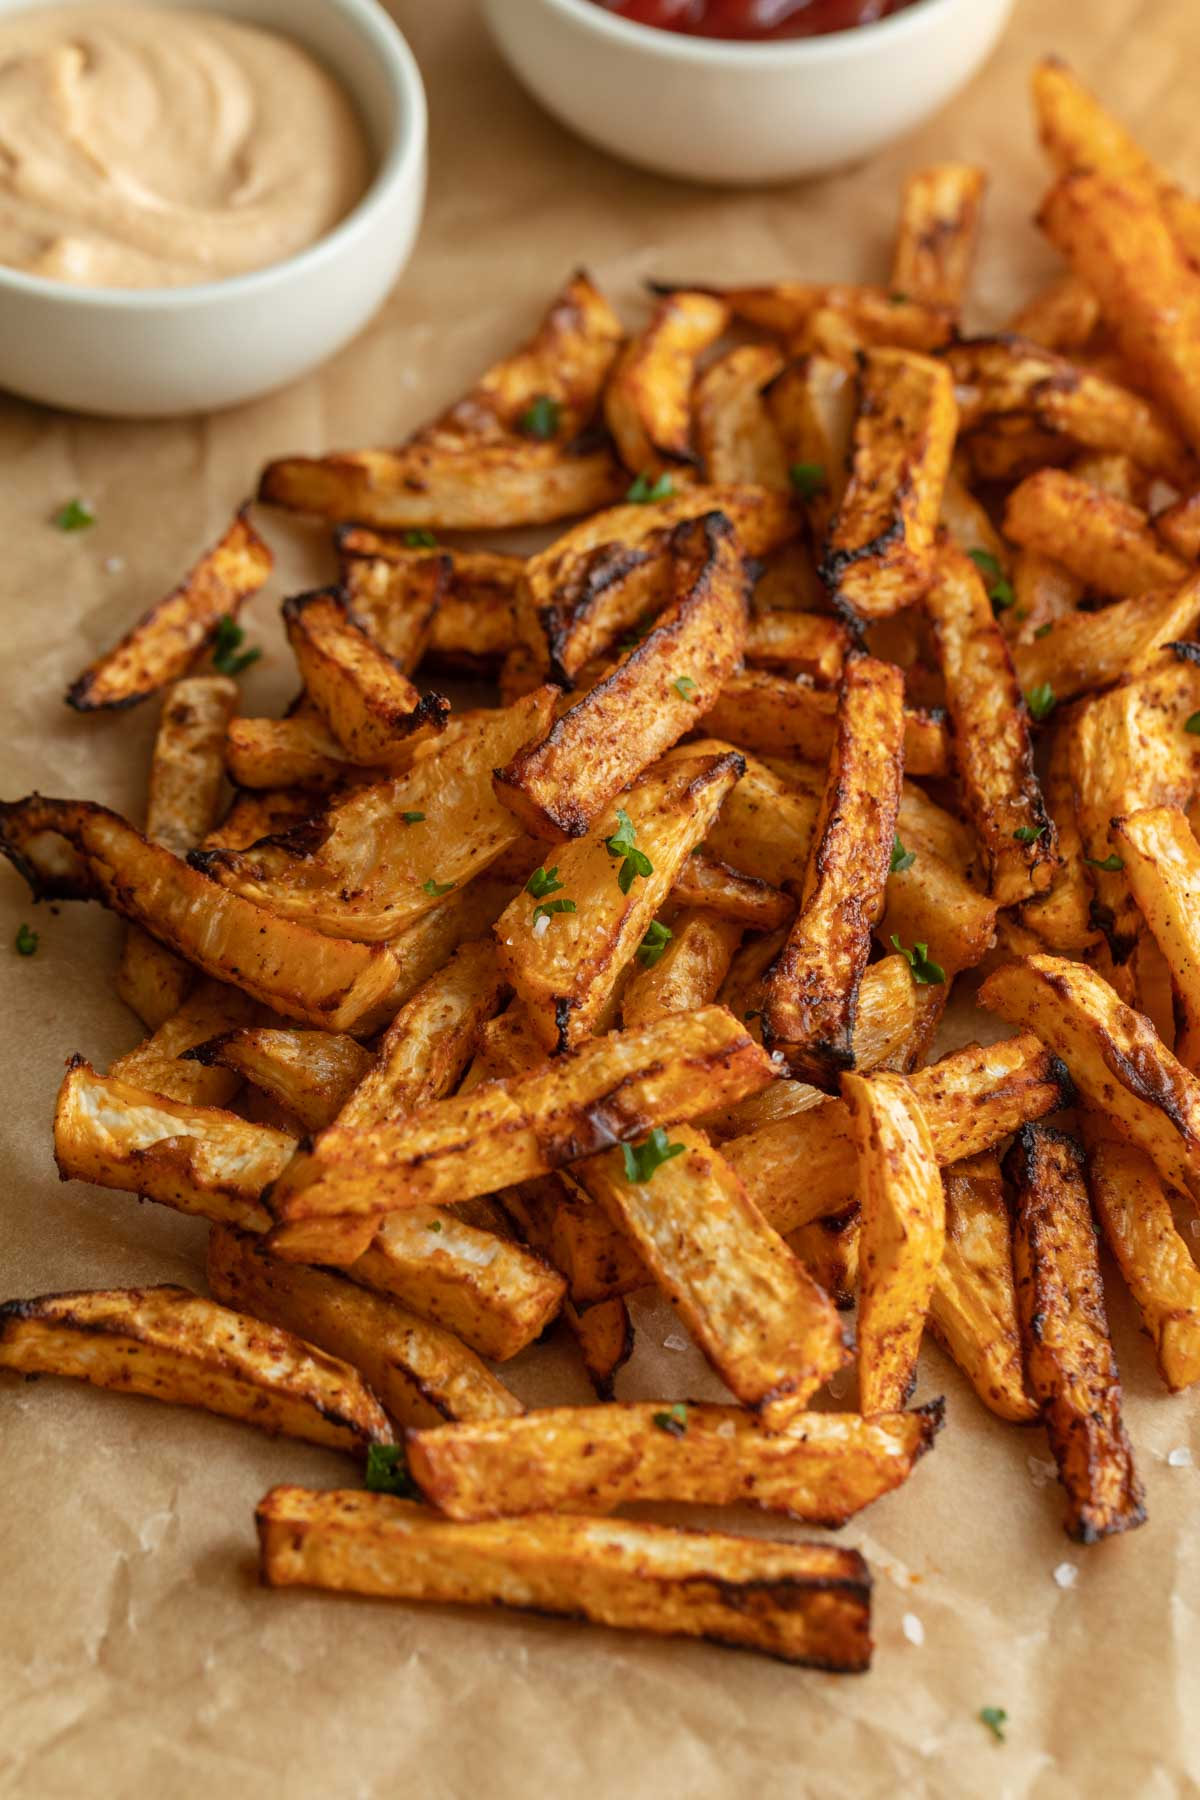 Close up of air fryer turnip fries with chopped parsley sprinkled on top.